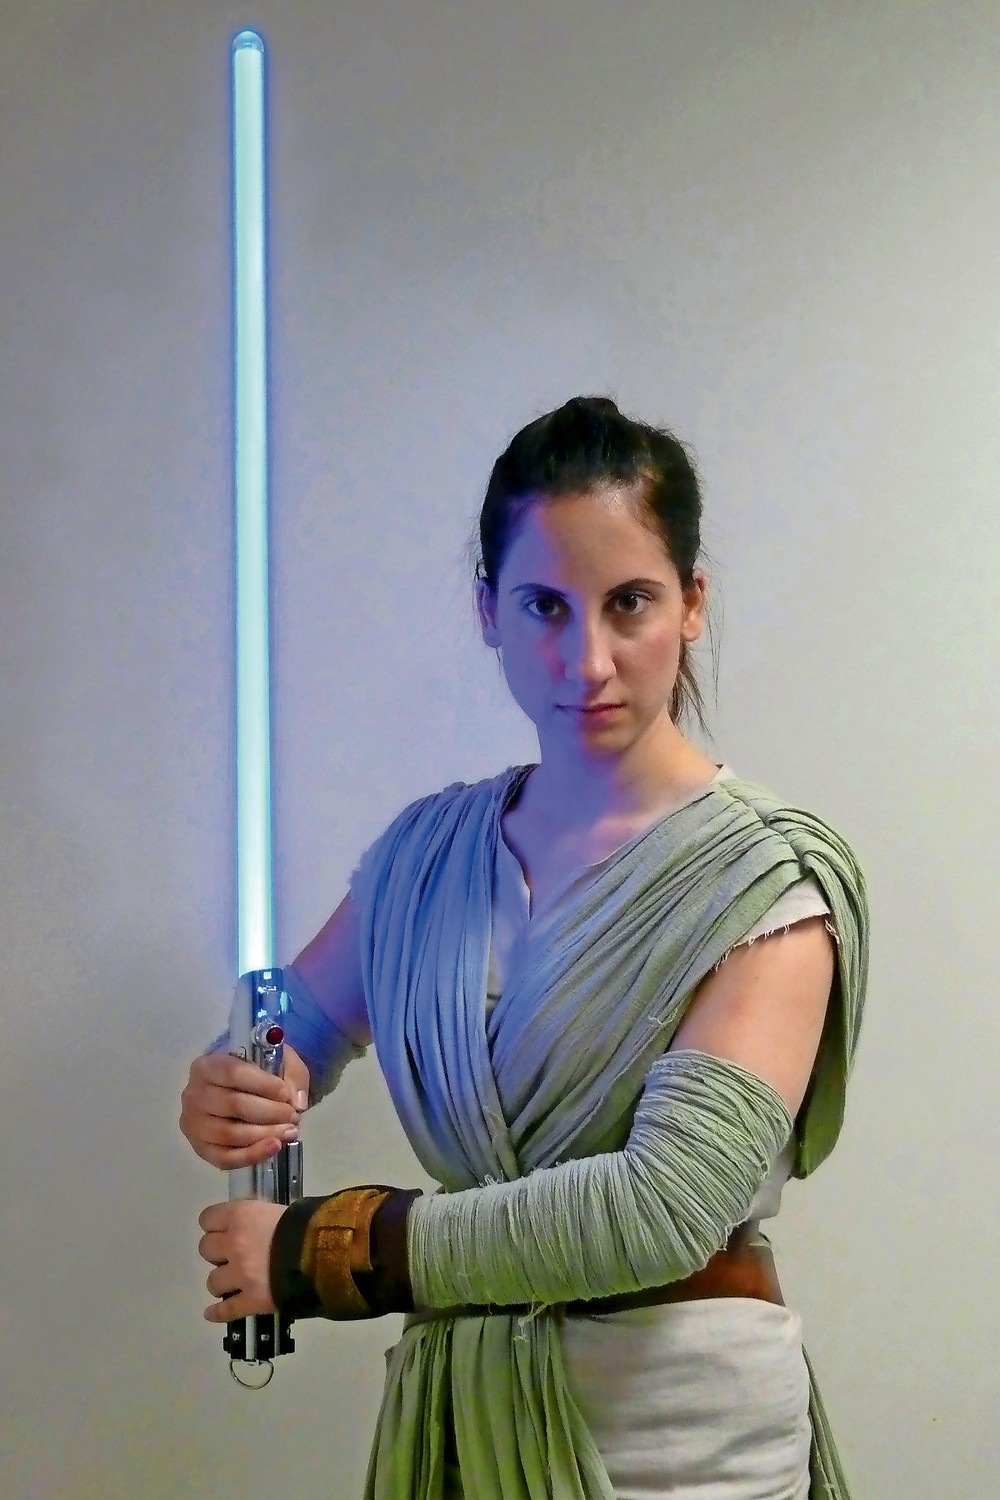 Lisa Giunta dressed as Rey, the last Jedi Warrior, as she prepared for battle for the Resistance.